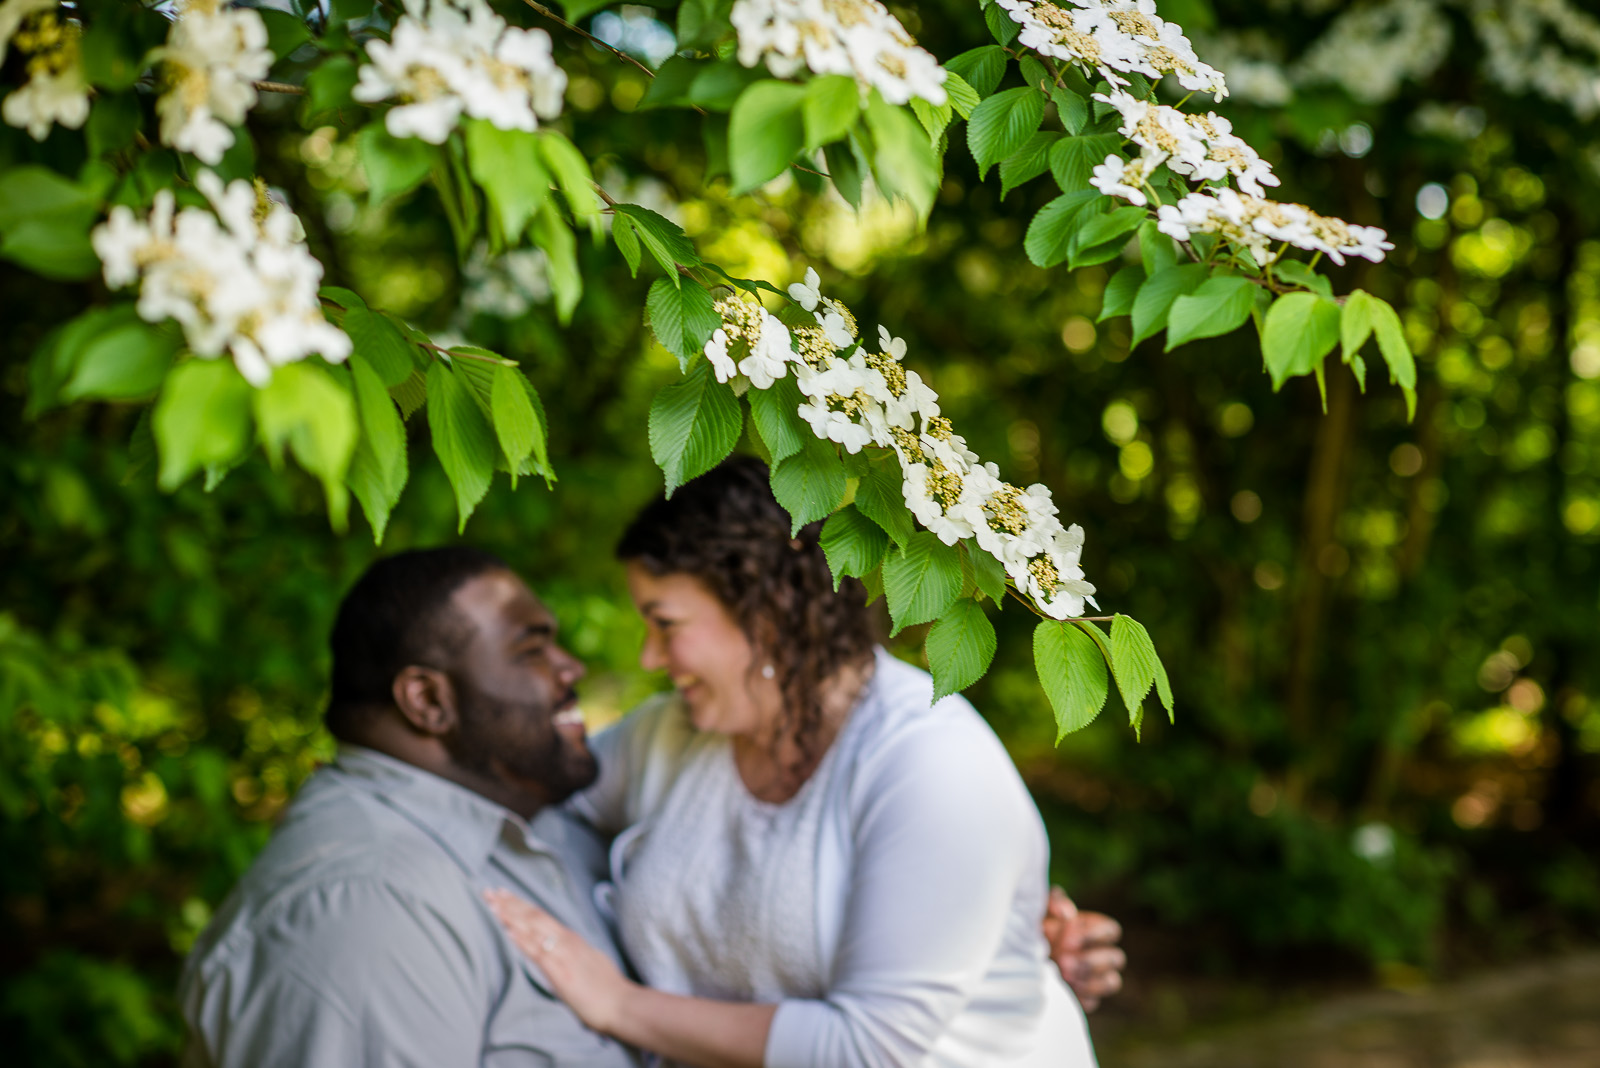 Eric_and_Christy_Photography_Blog_Laura_Jamal_Engagement-19